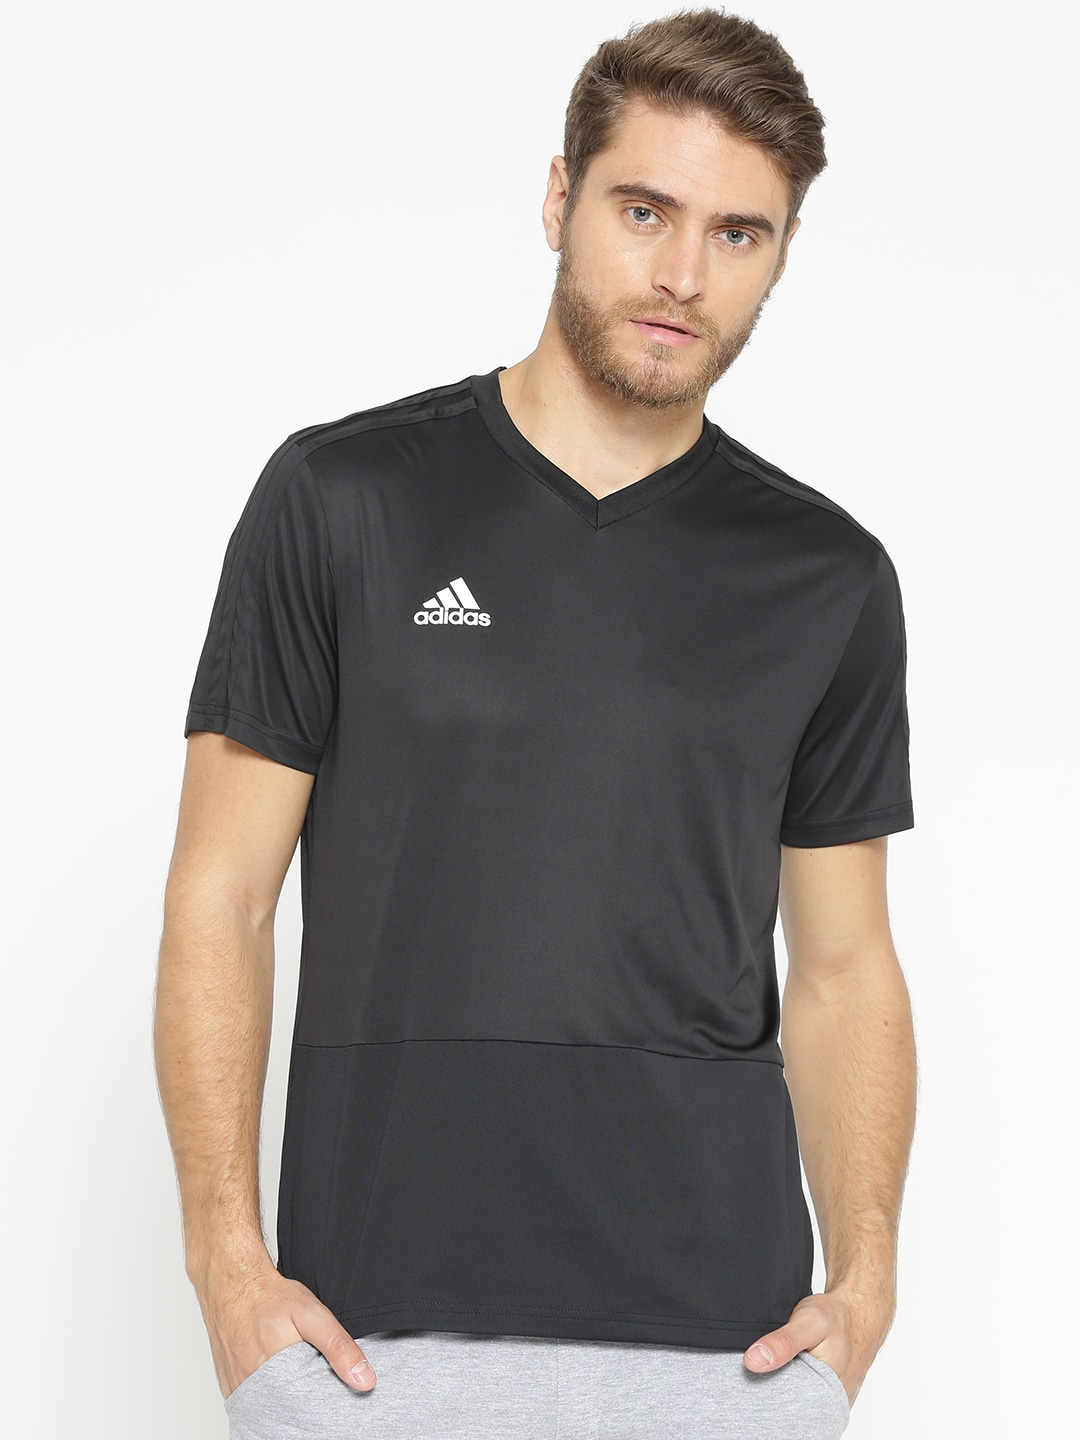 bf0001216cc136 Adidas T-Shirts - Buy Adidas Tshirts Online in India